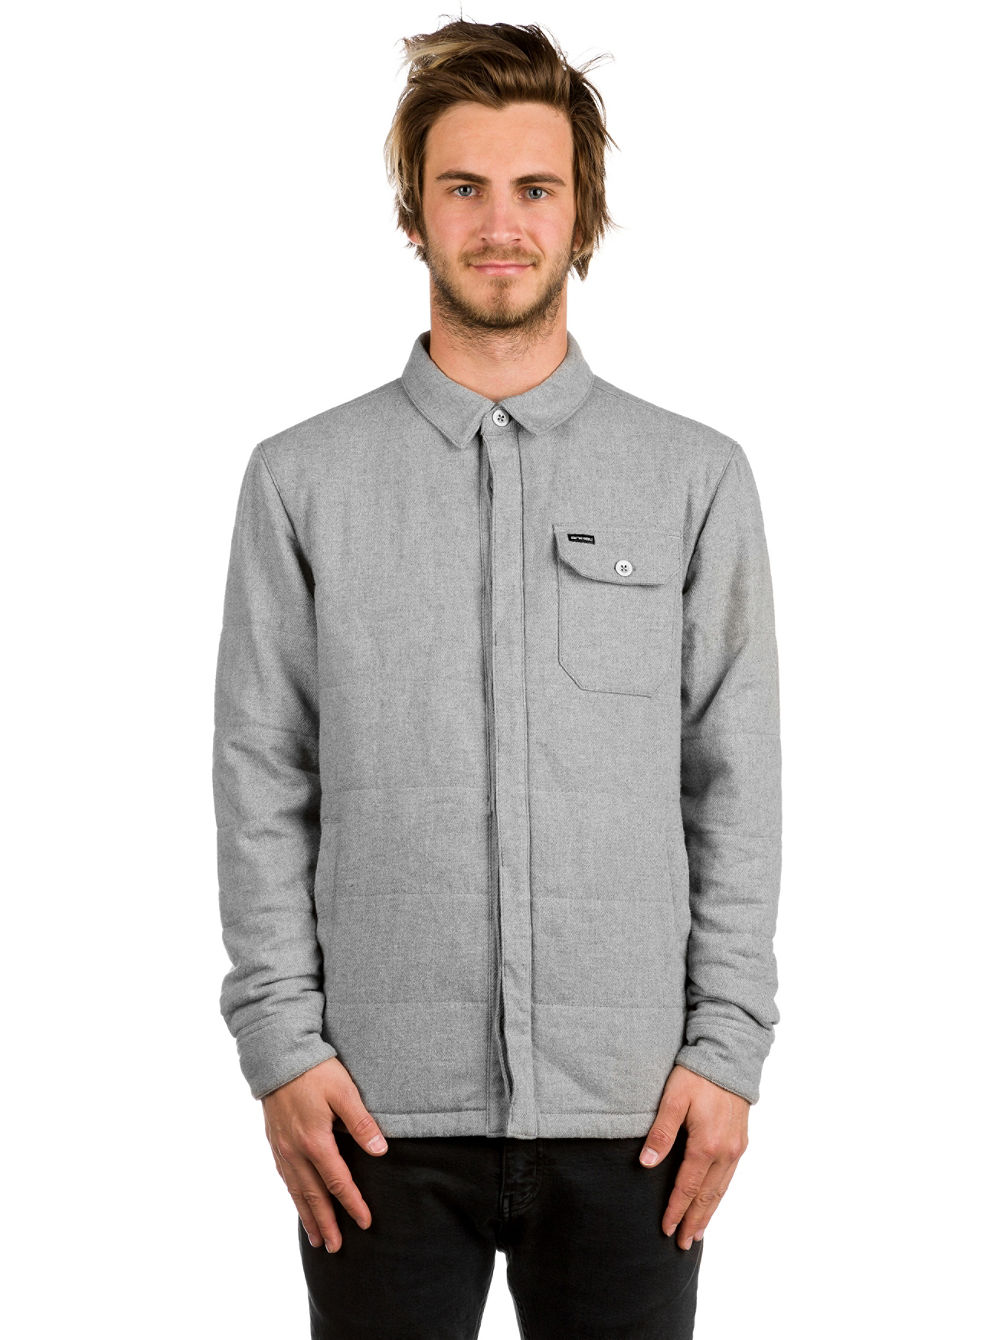 Morgan Shirt Jacket